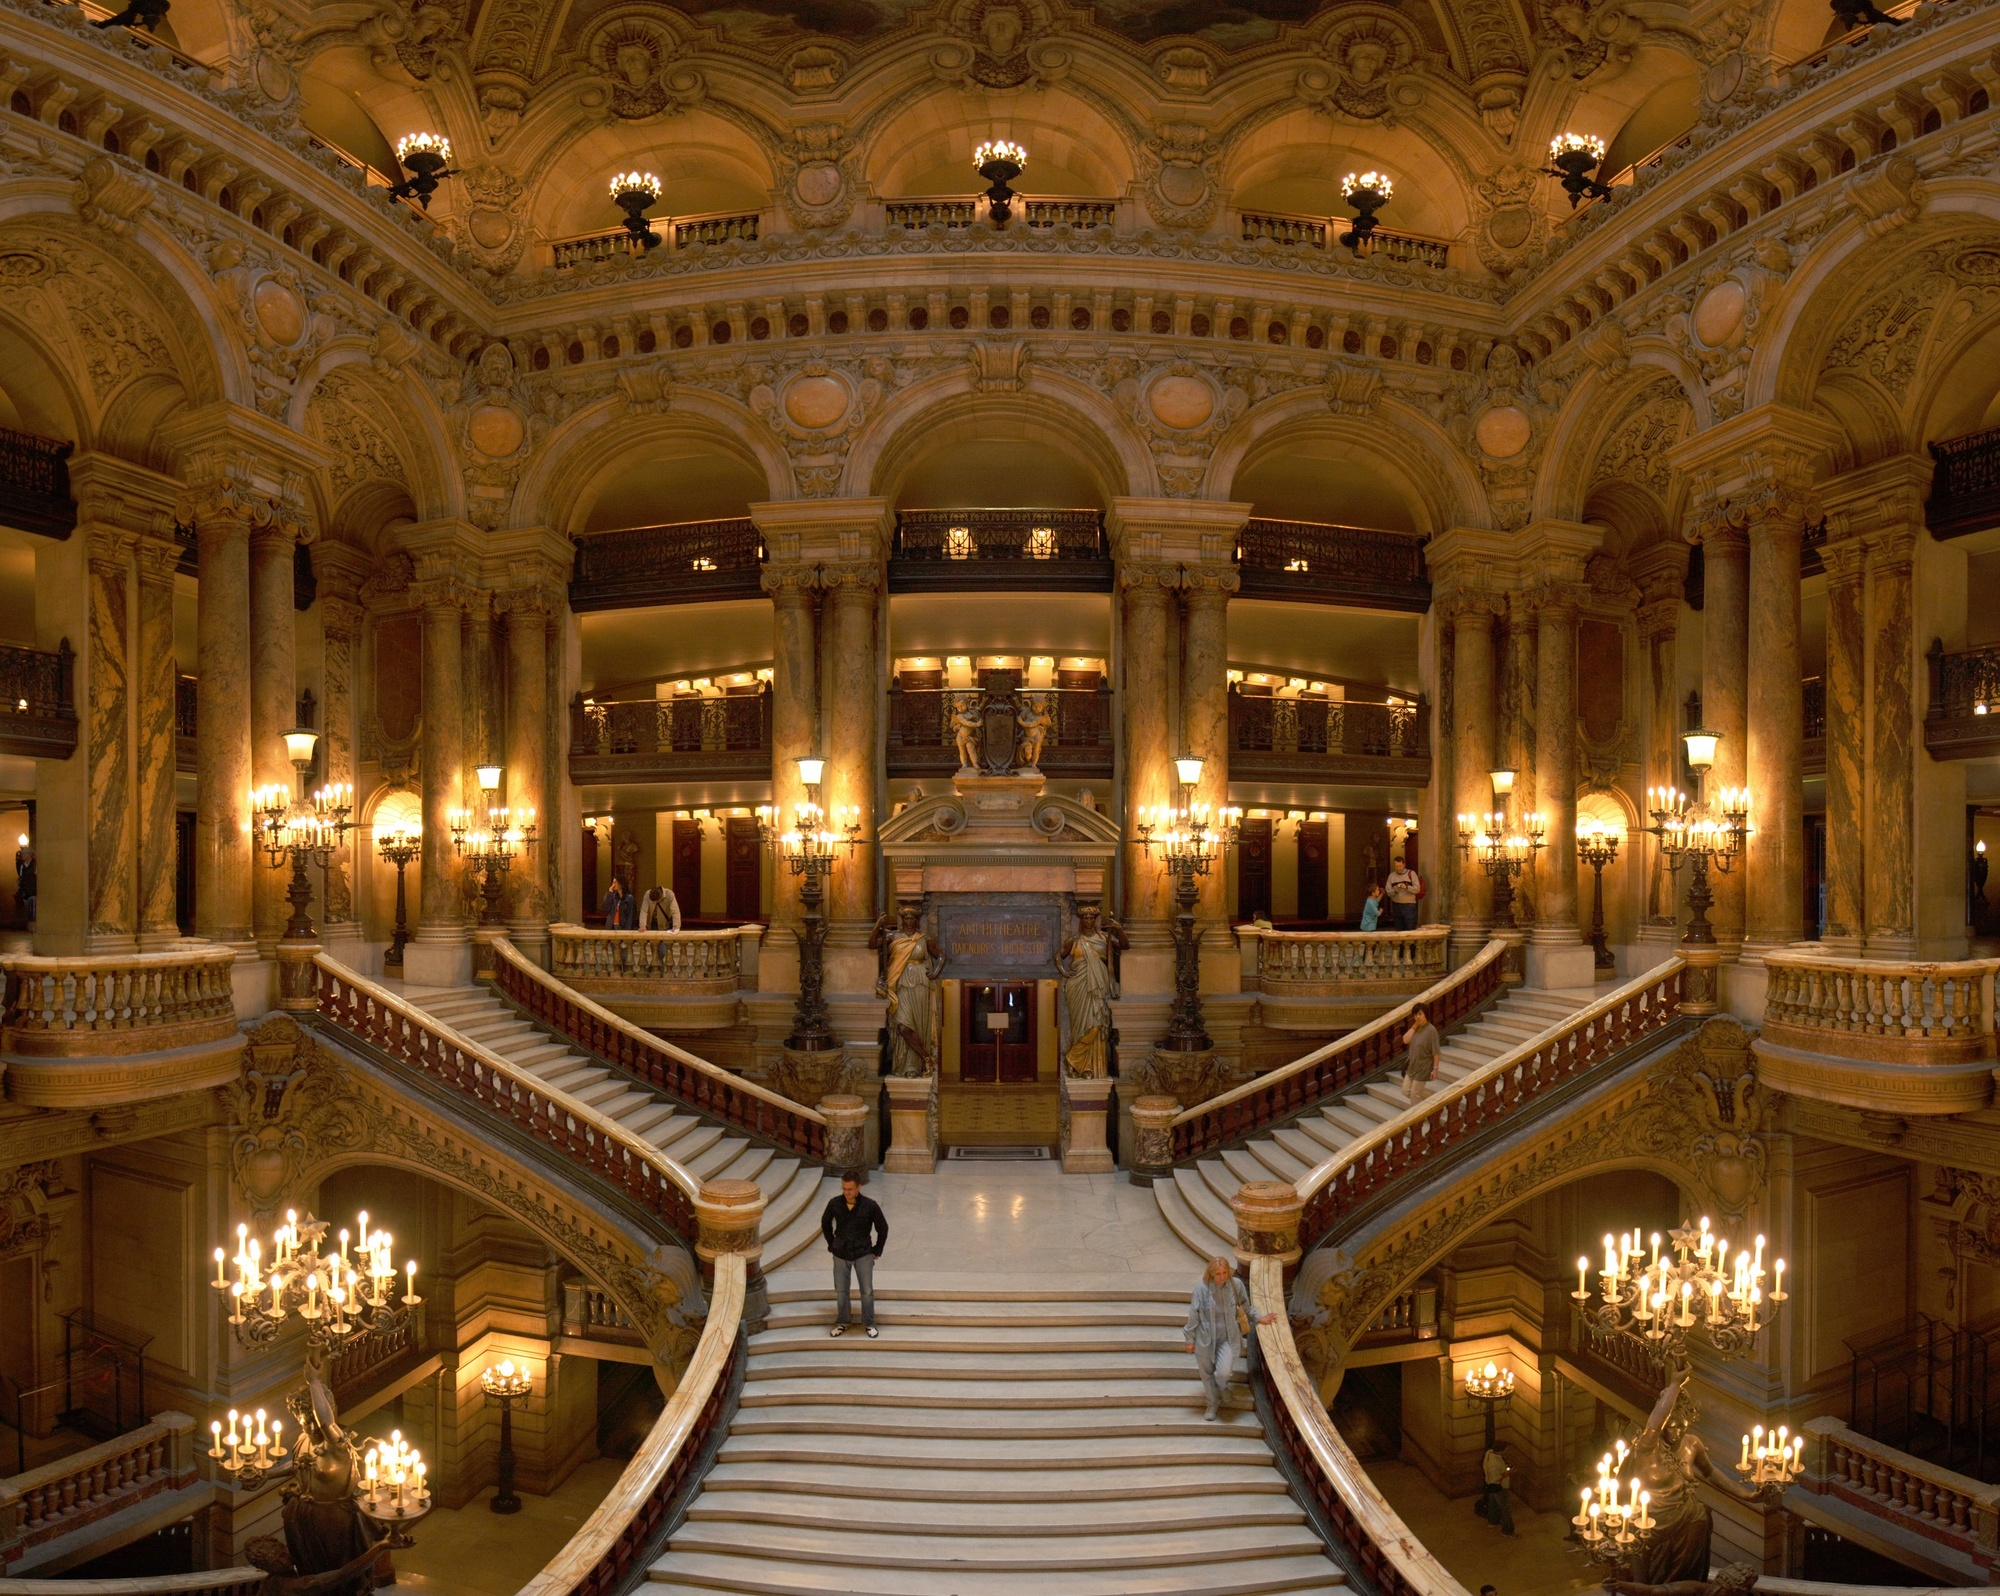 Palais garnier wikipedia the grand escalier aloadofball Images